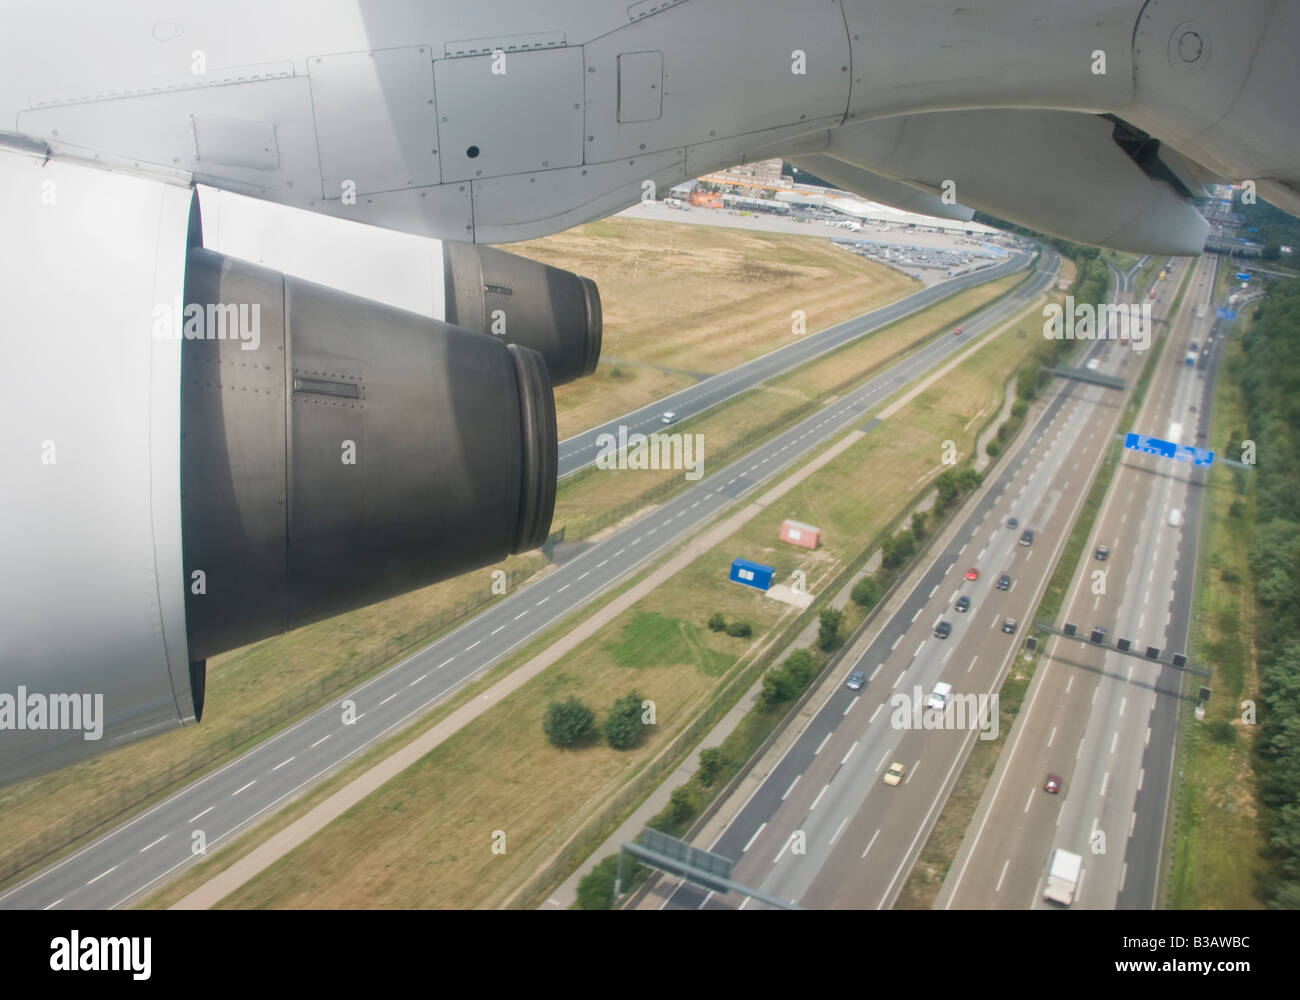 A plane flying over a motorway - Stock Image